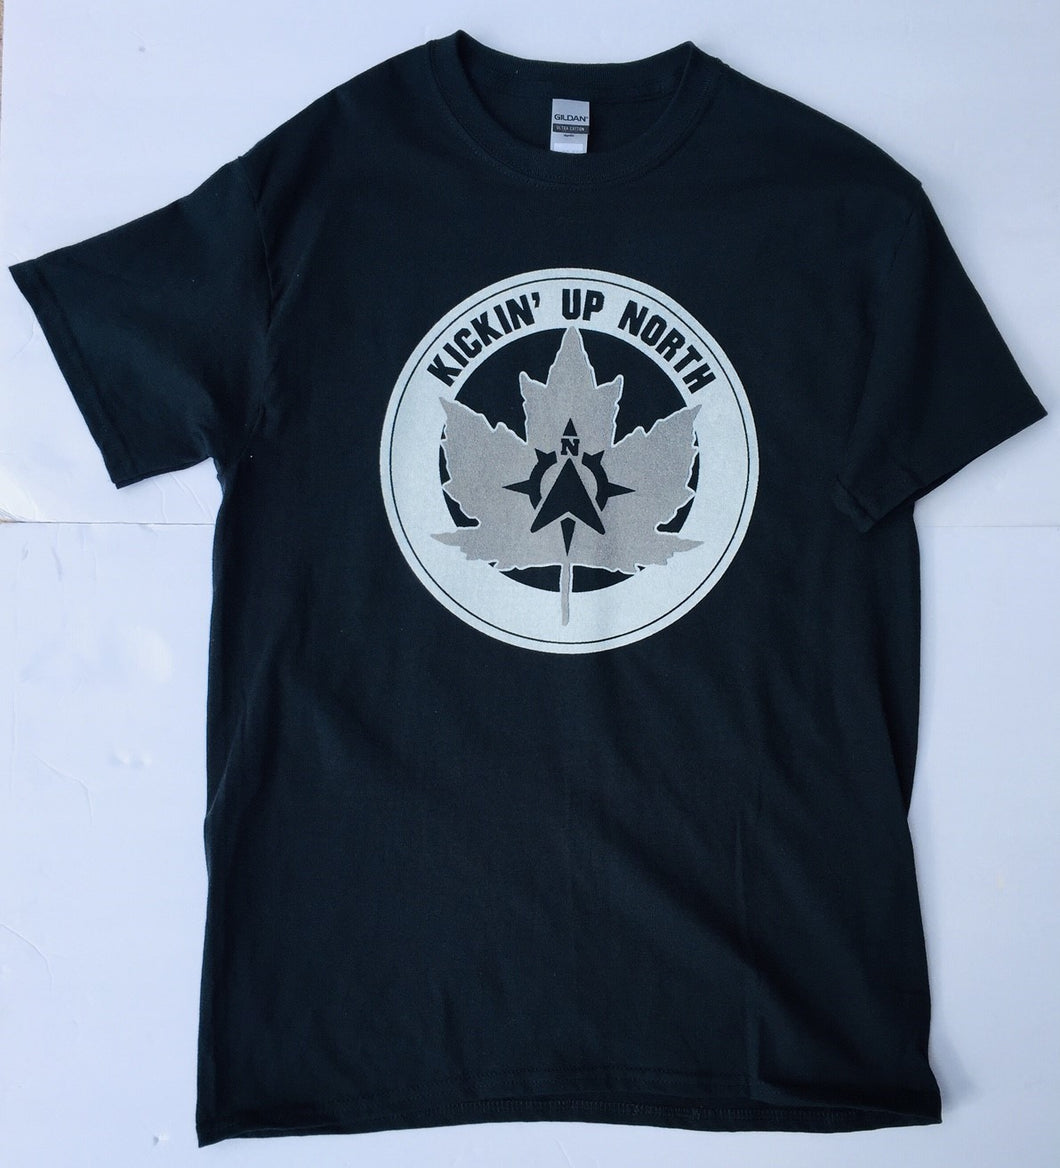 Kickin' Up North Black and White Tee Shirt